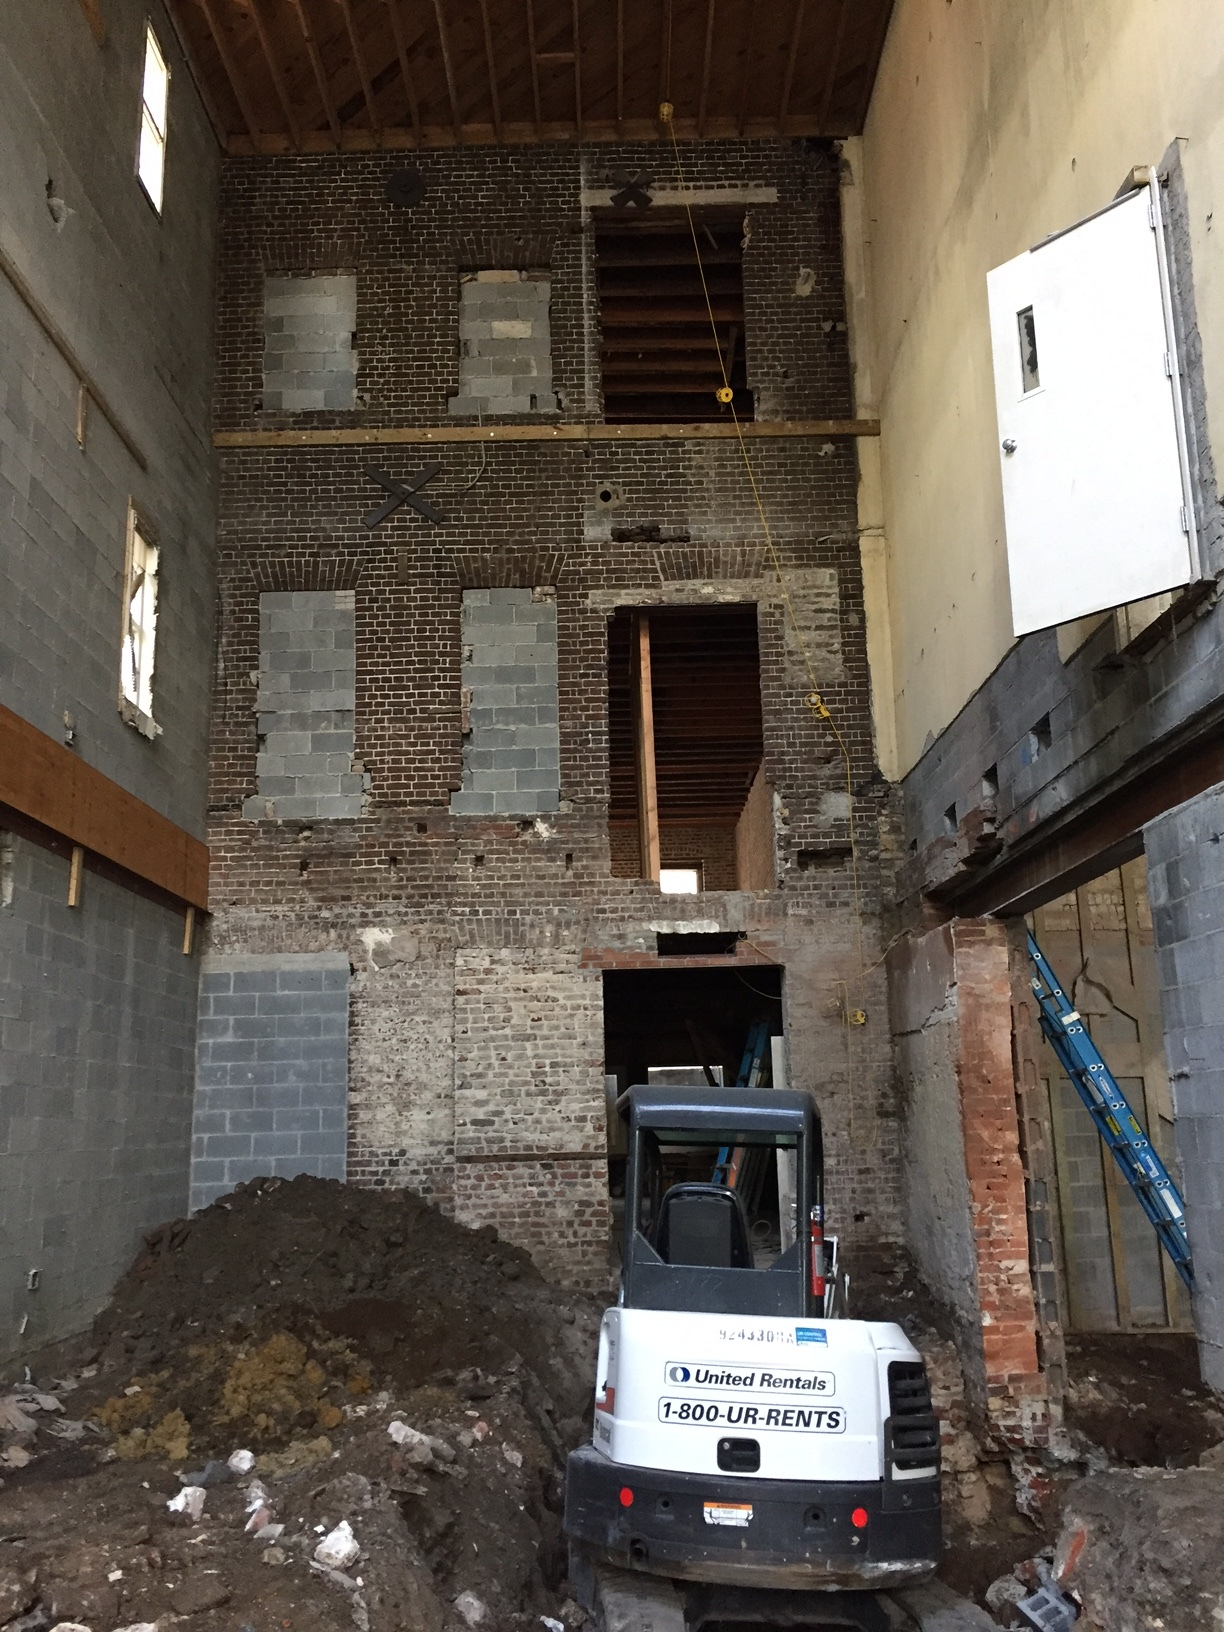 - May 1, 2017Excited to have exposed this historic brick wall in a Broad Street project, with foundation work going on as well.